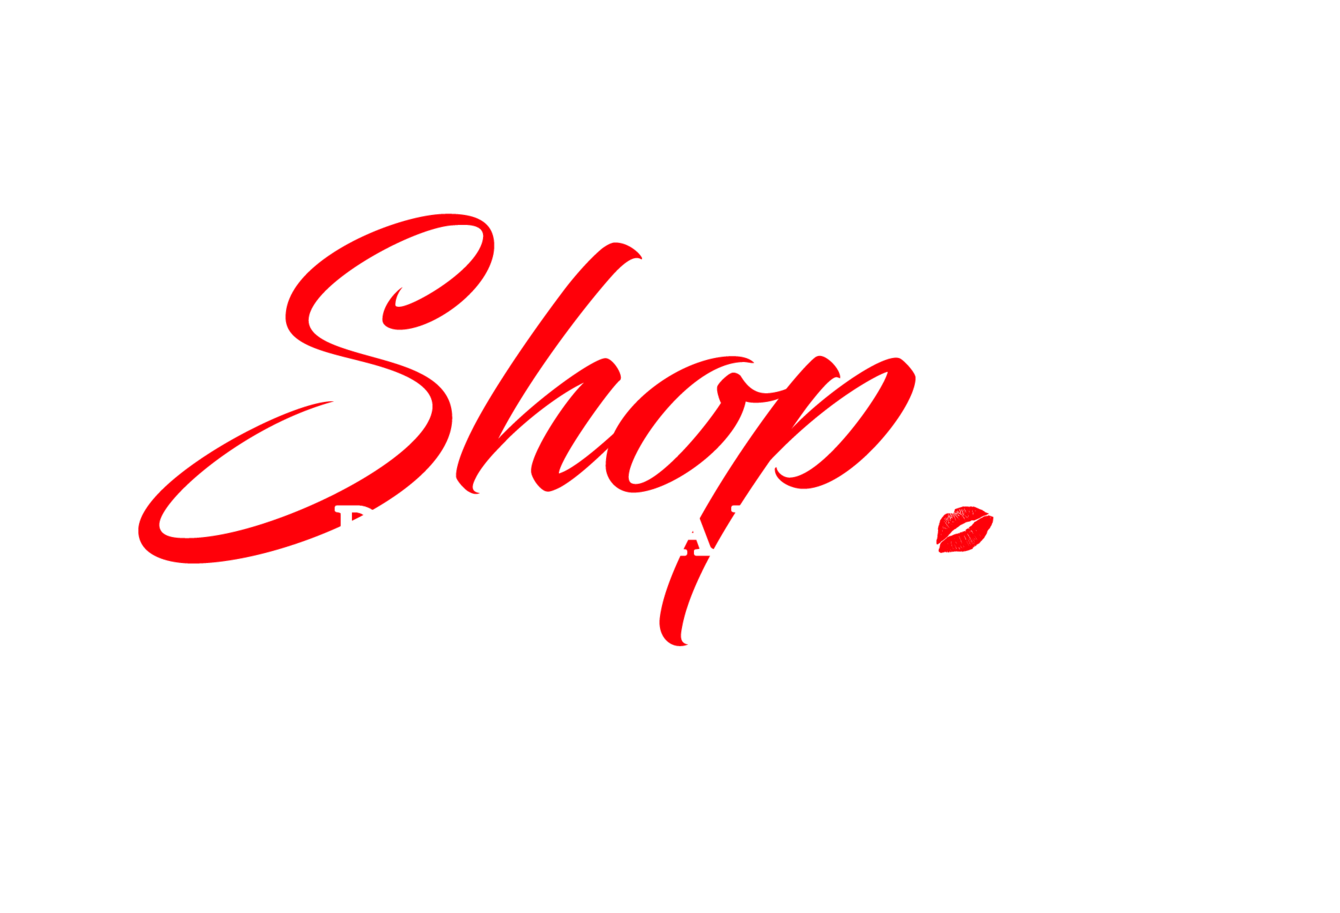 Shop Diary of a Fashionista